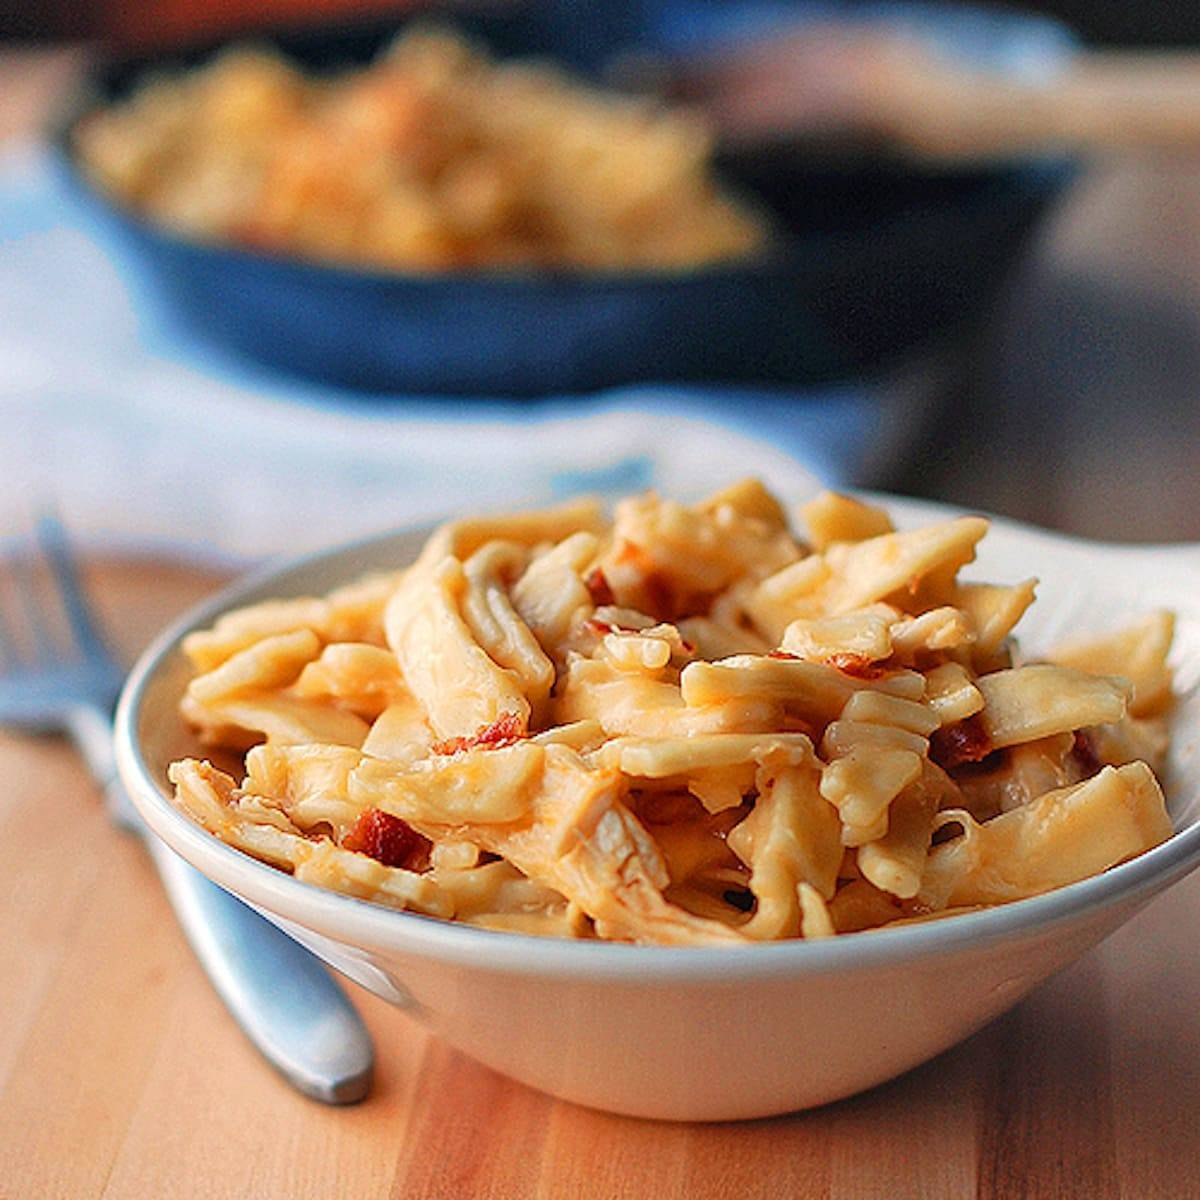 Cheesy chicken noodles coated in a creamy sauce and tossed with shredded chicken in a bowl.